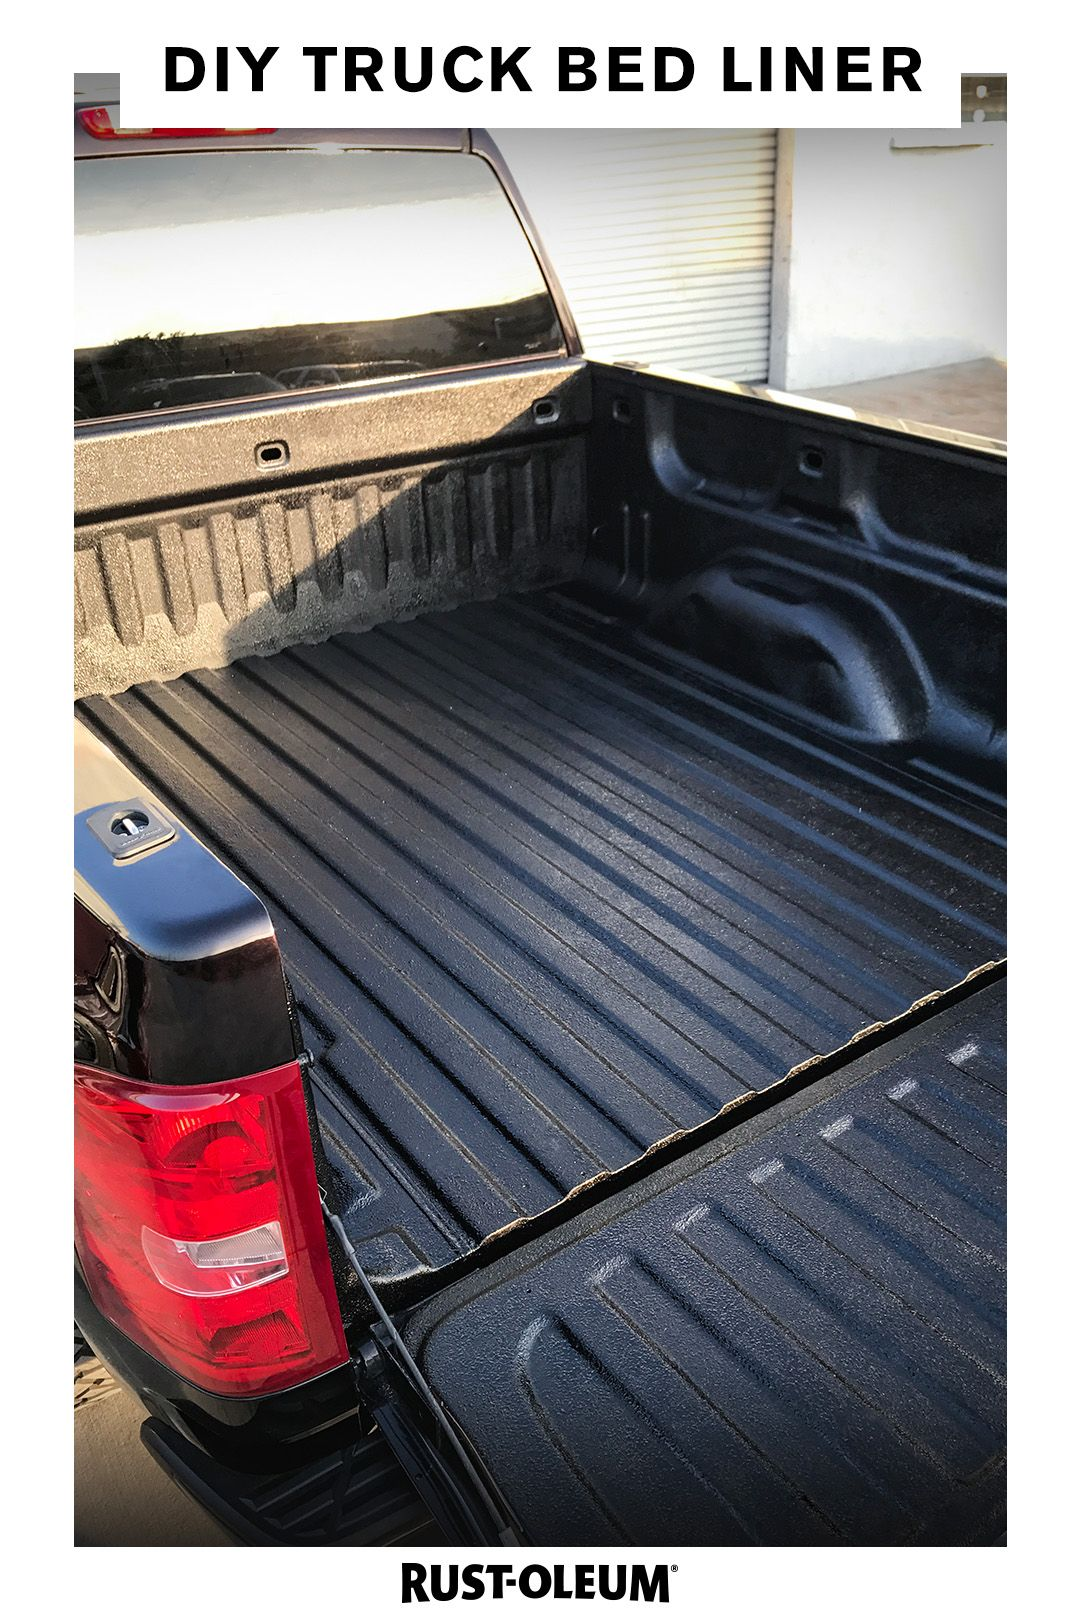 Help Your Truck Bed Work As Hard As You Do By Giving It The Protection It Needs With Rust Oleum Turbo Spray Truck B Truck Bed Liner Diy Truck Bedding Bed Liner